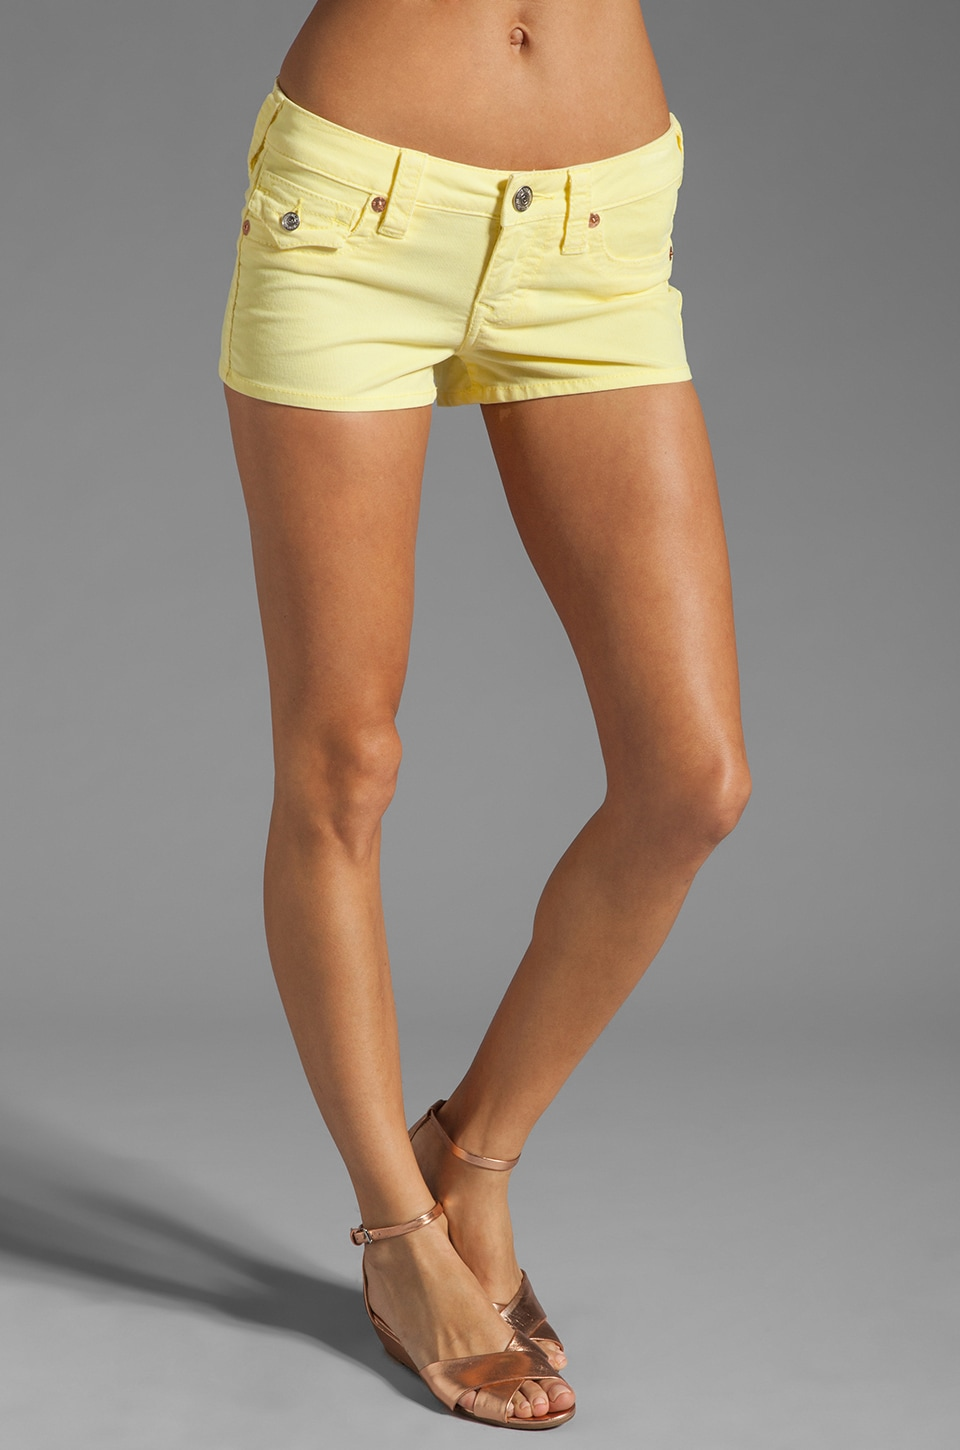 True Religion Joey Short in Daffodil